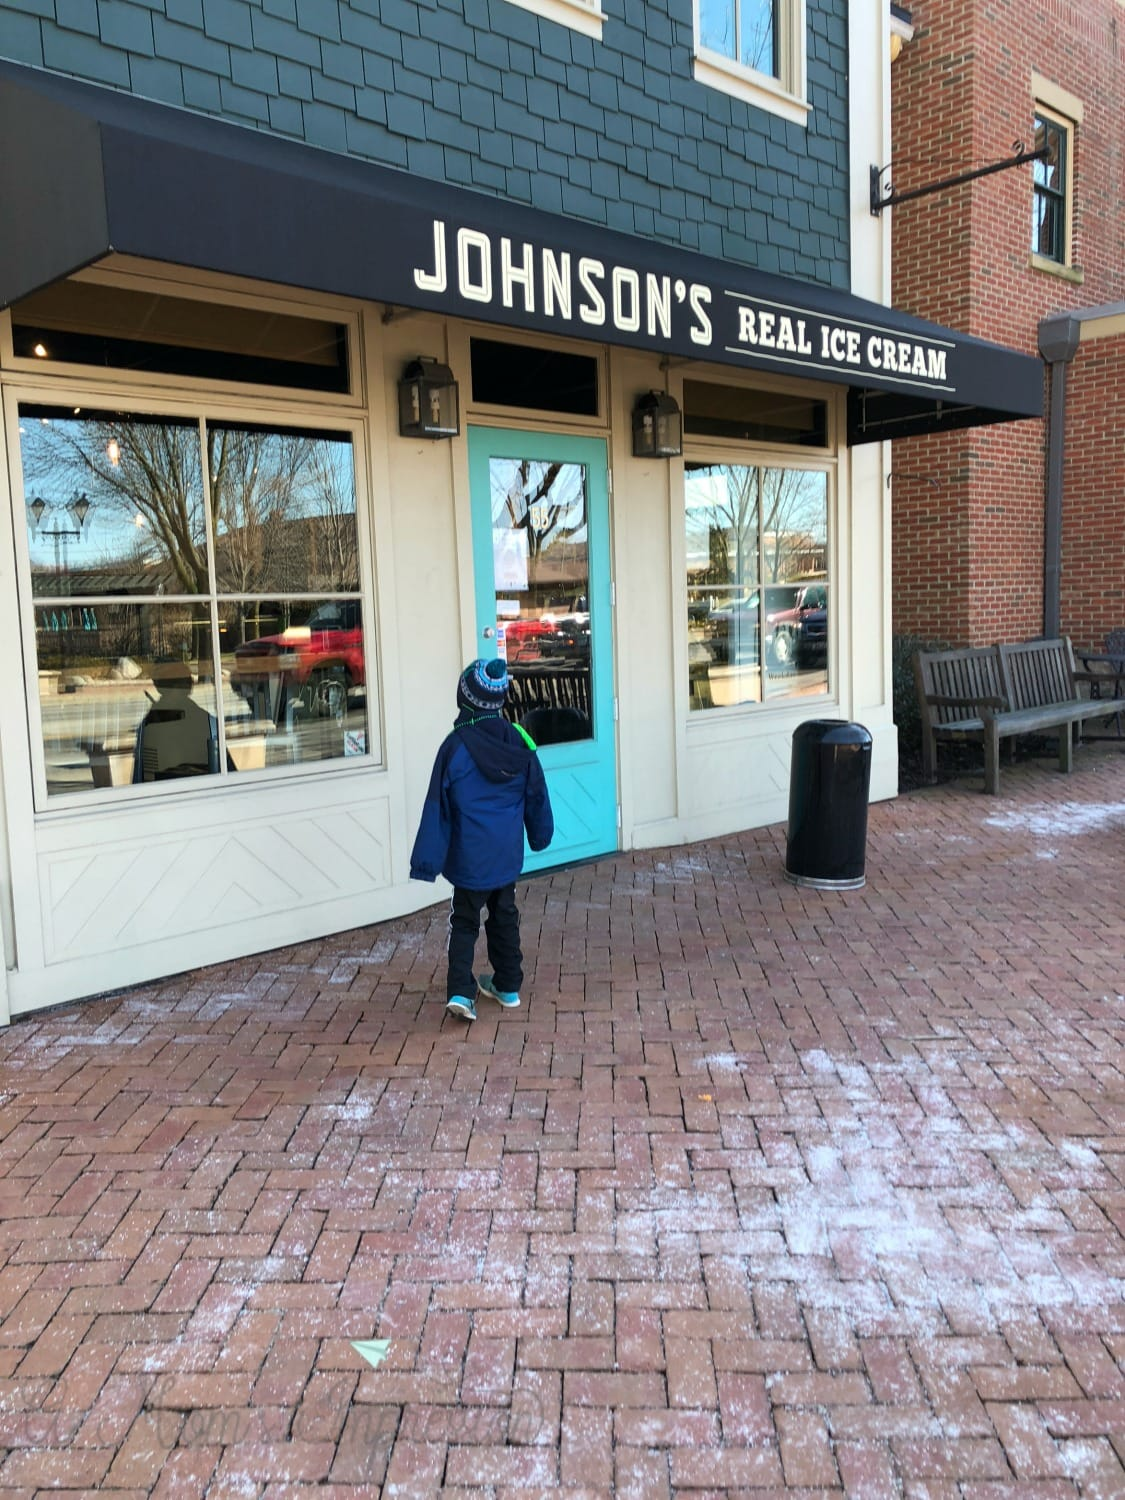 Johnsons ice cream shop